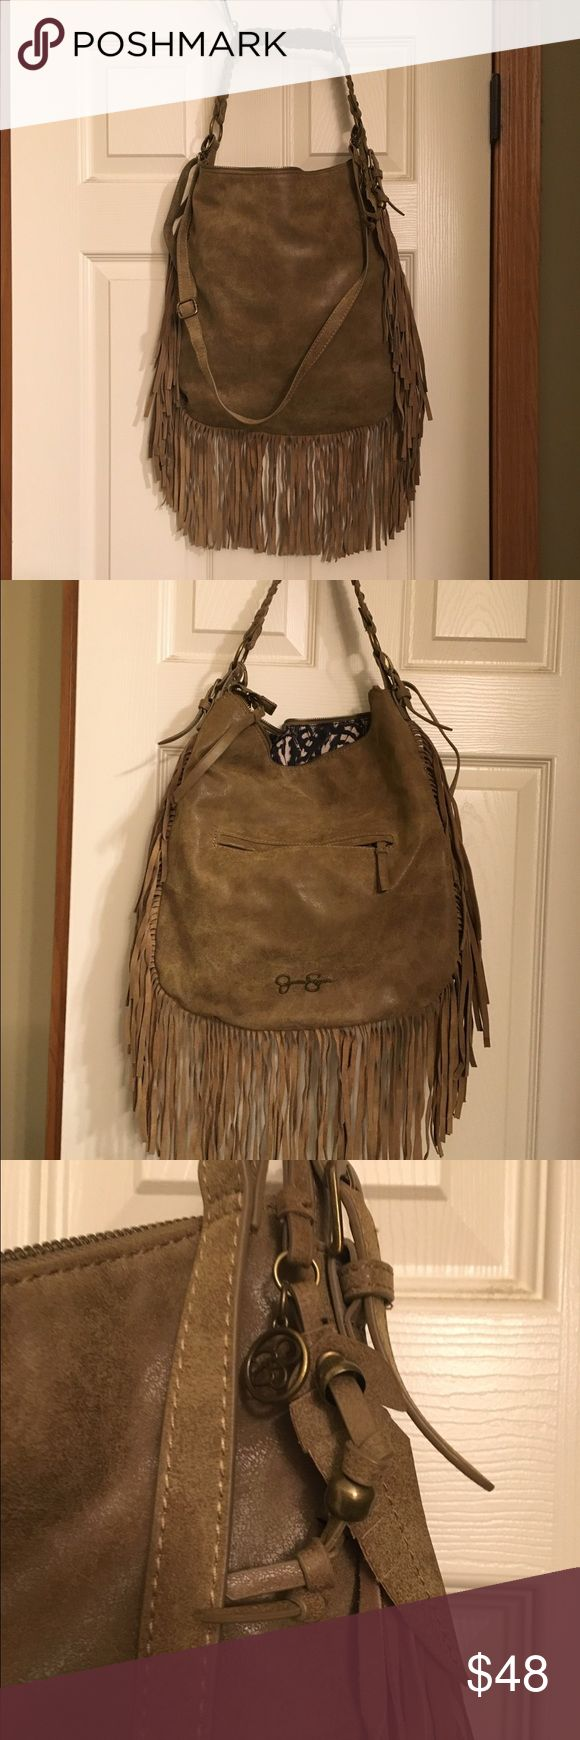 Jessica Simpson tassel cross-body Jessica Simpson Delilah fringe hobo bag -large bag wit lots of room Jessica Simpson Bags Crossbody Bags